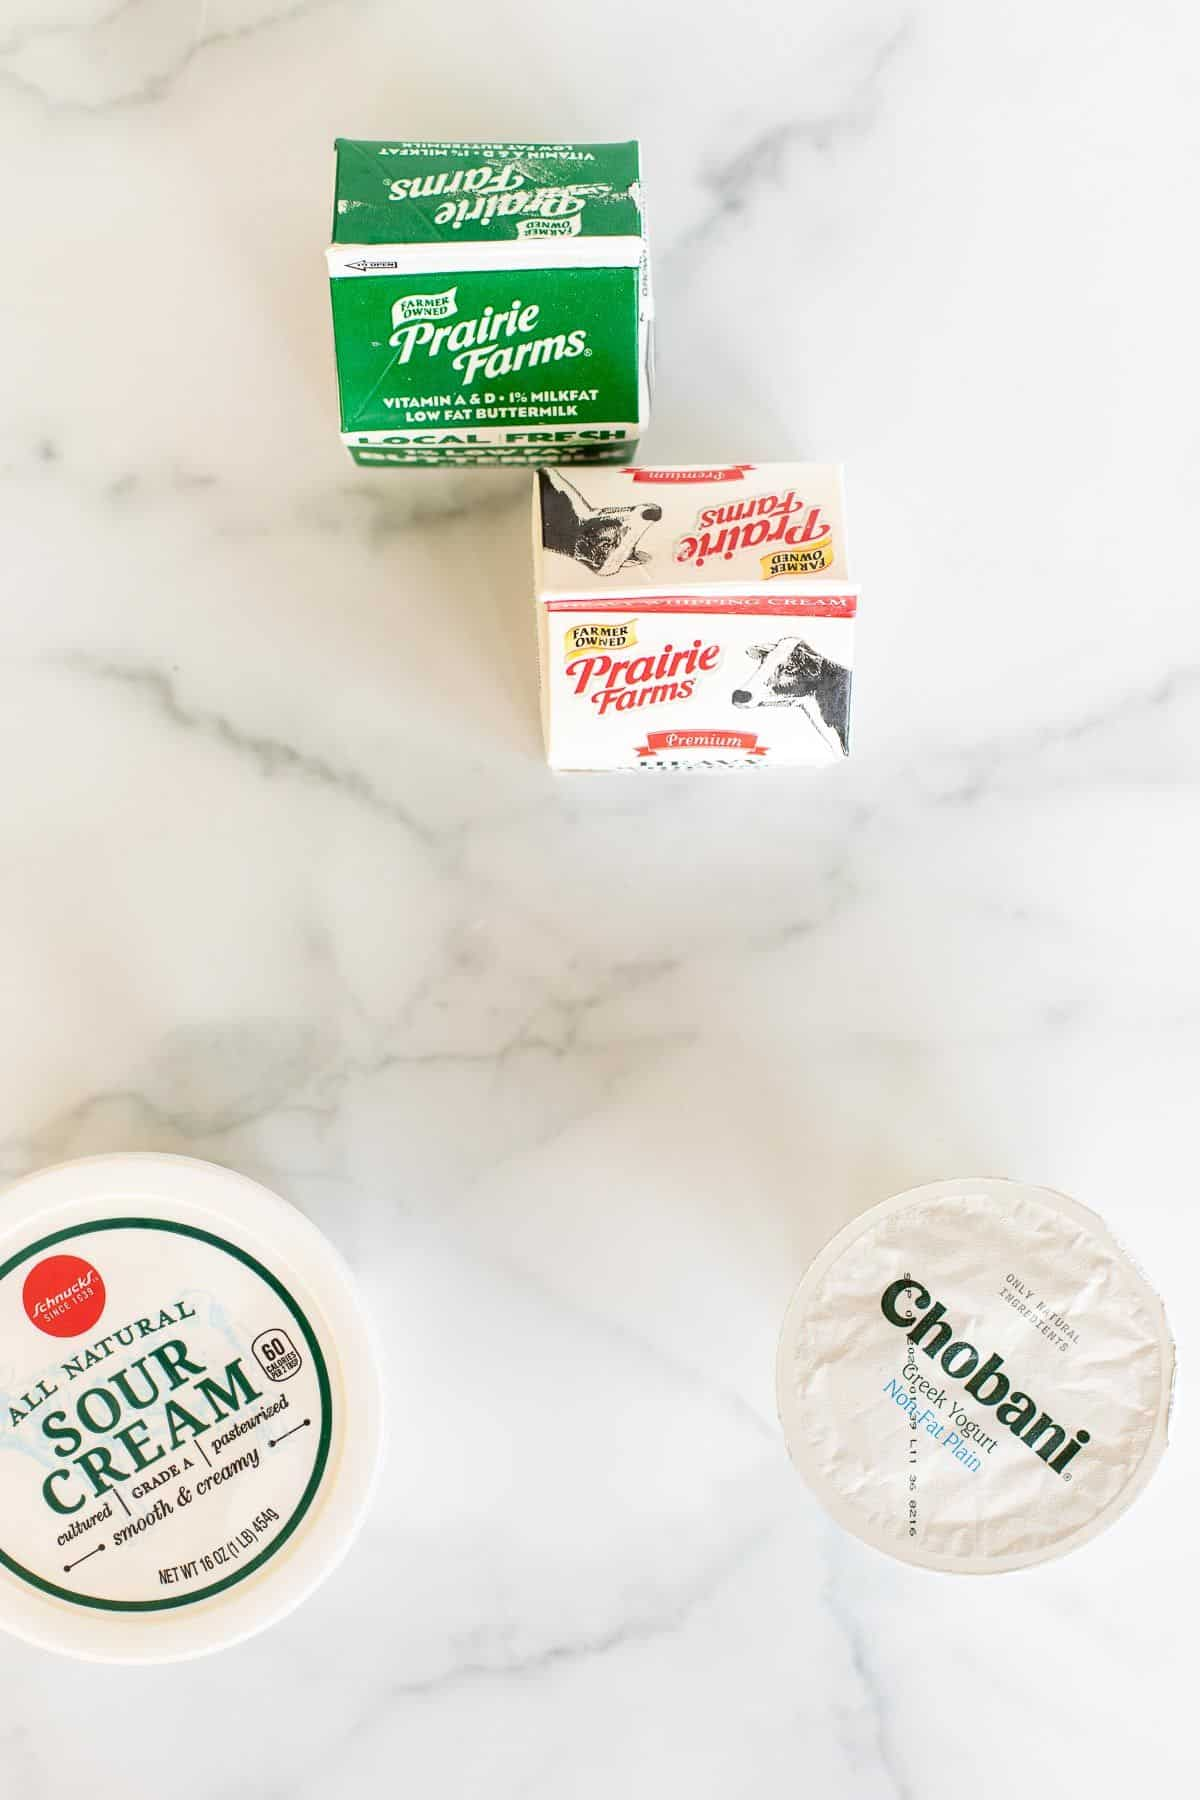 A small carton of buttermilk, a carton of whipping cream, a container of sour cream, and a small greek yogurt container all placed on a marble surface.